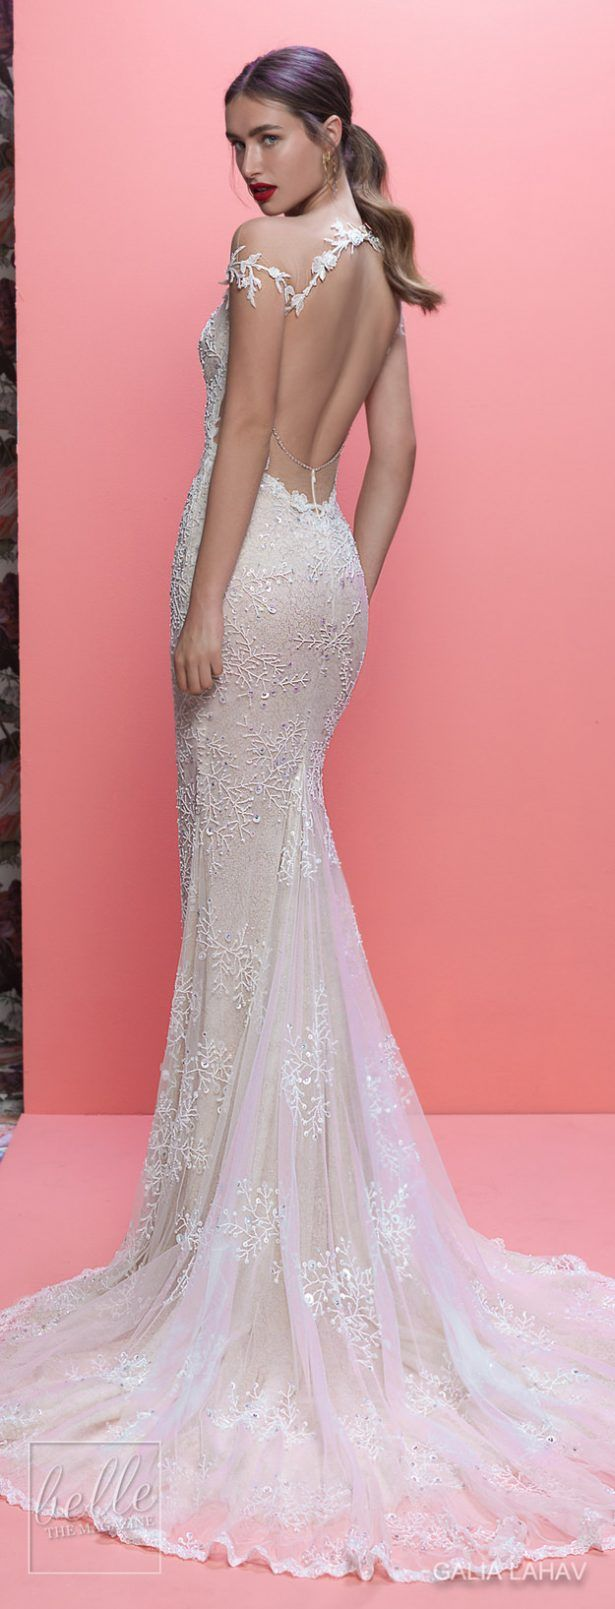 Galia Lahav Couture Bridal Spring 2019 Collection: Queen of Hearts ...